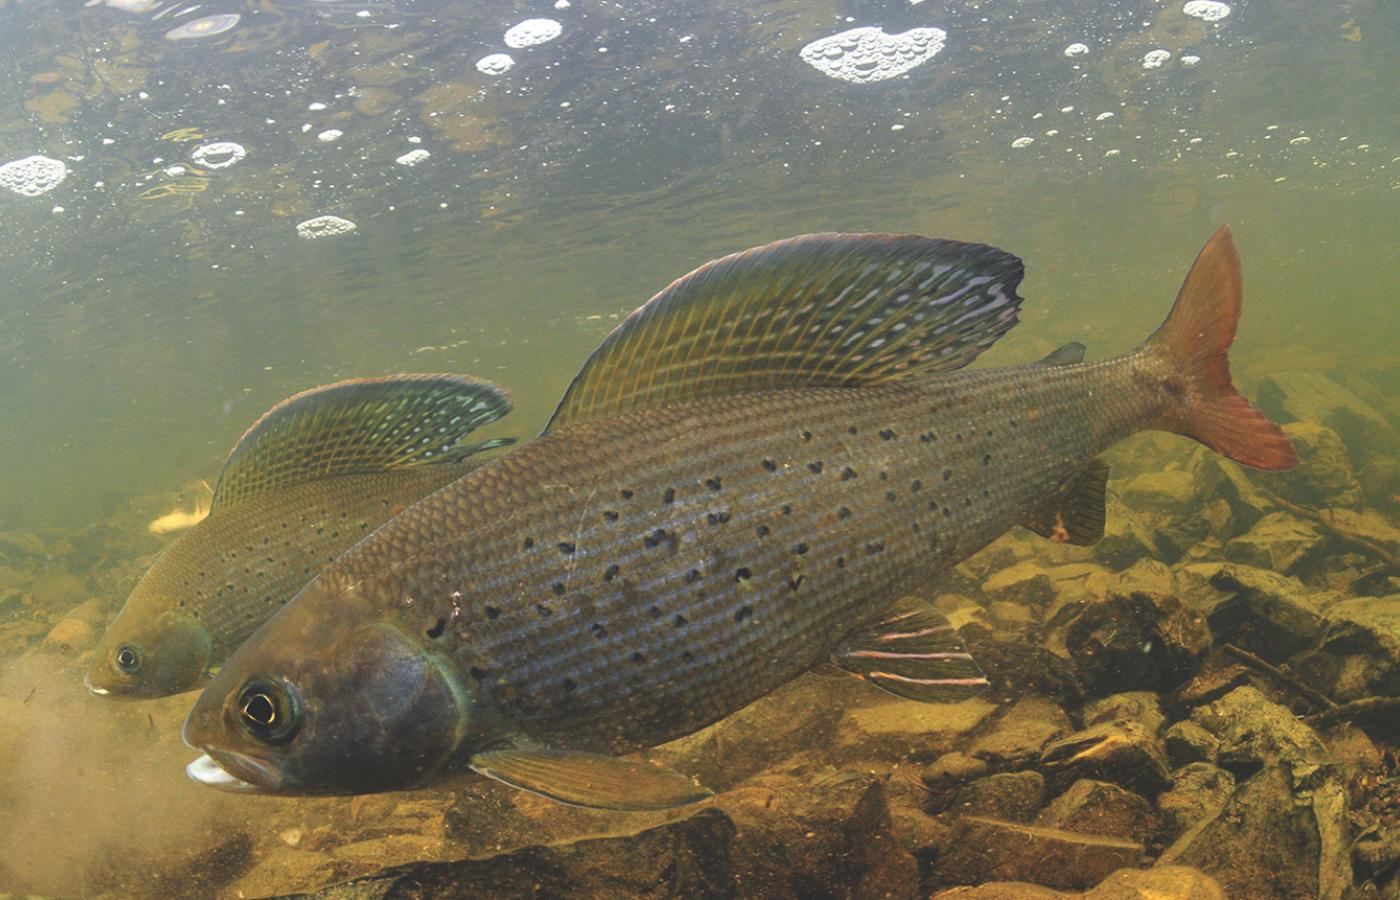 arctic grayling swimming underwater